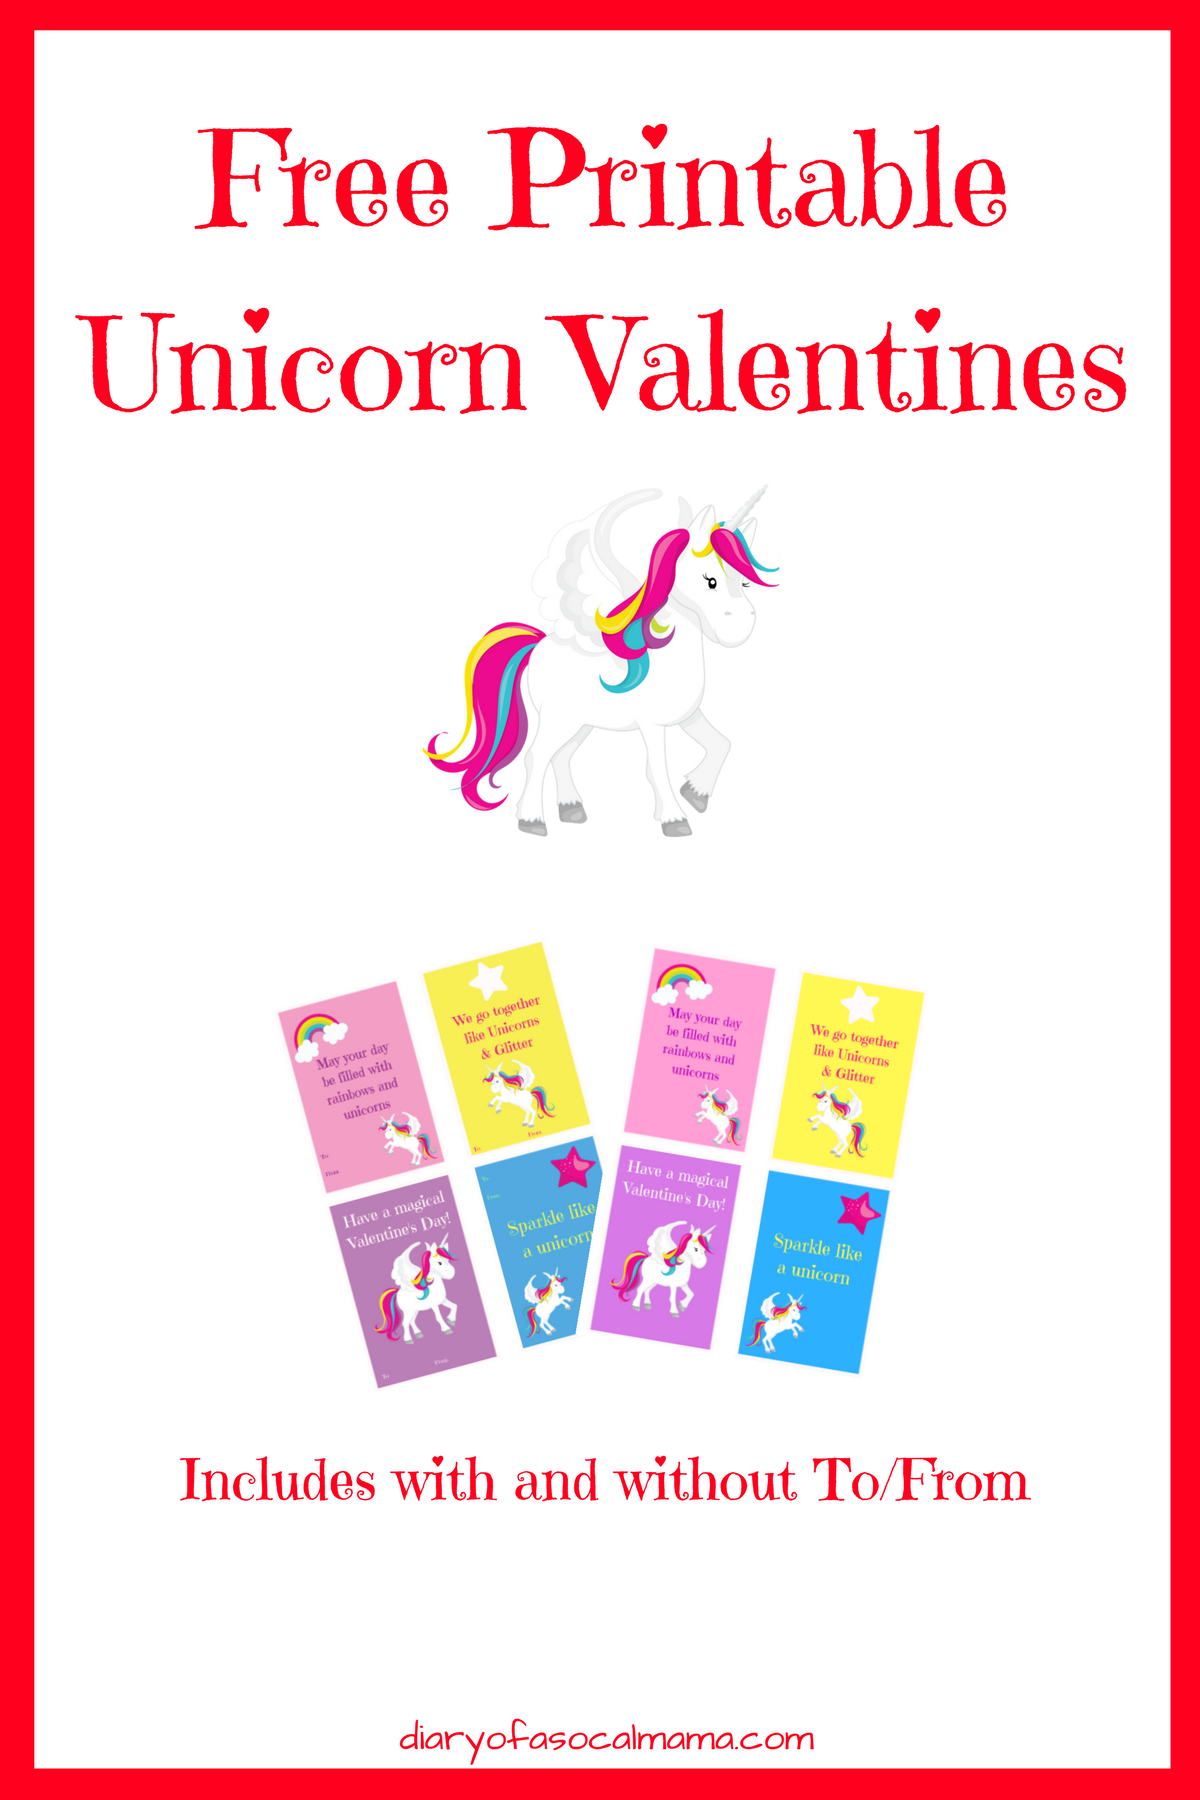 Free Printable Unicorn Valentines Diary Of A Socal Mama